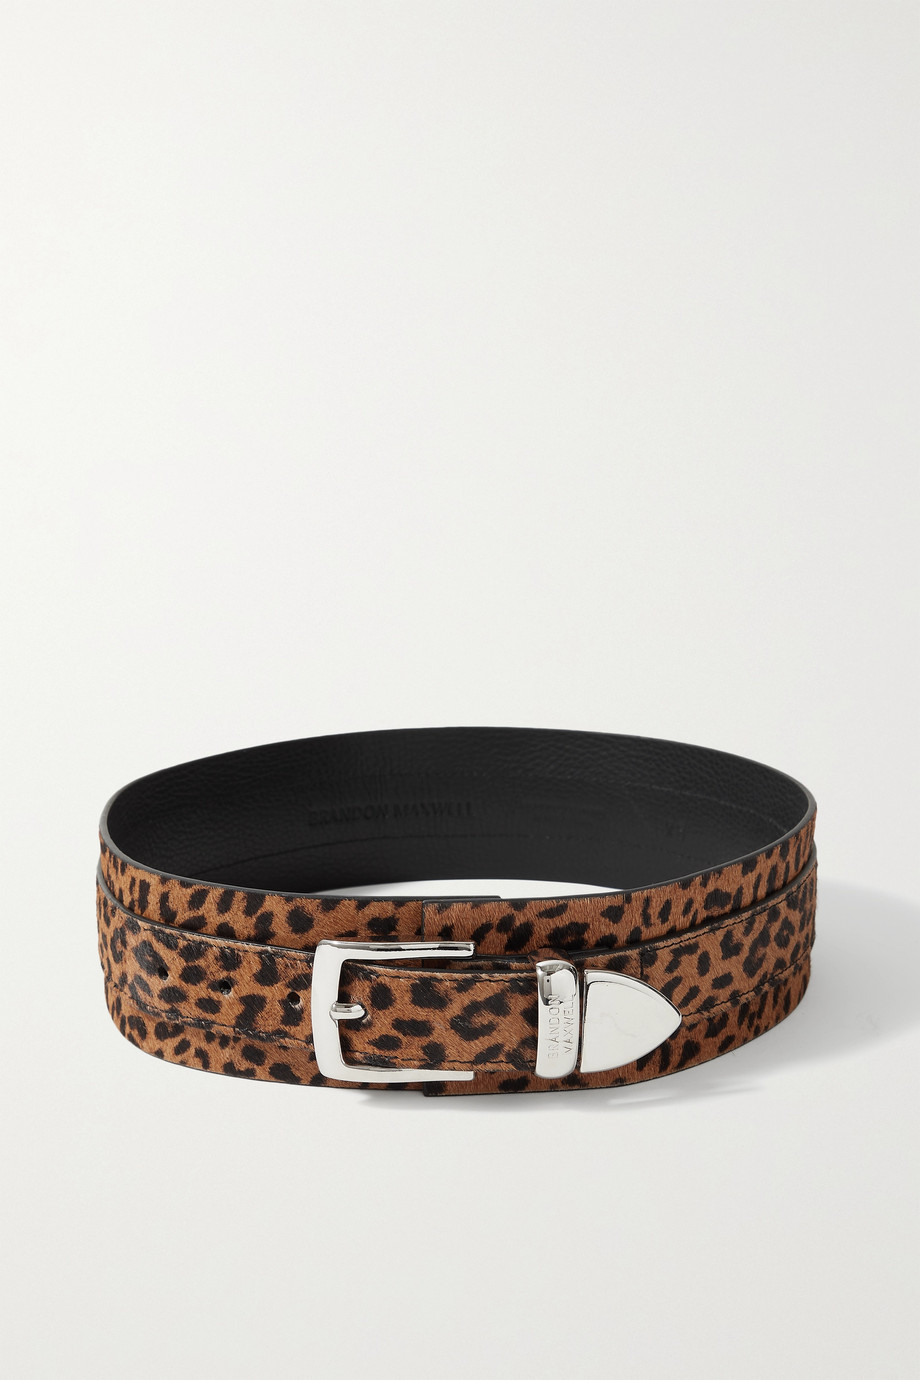 BRANDON MAXWELL Cheetah-print calf hair waist belt